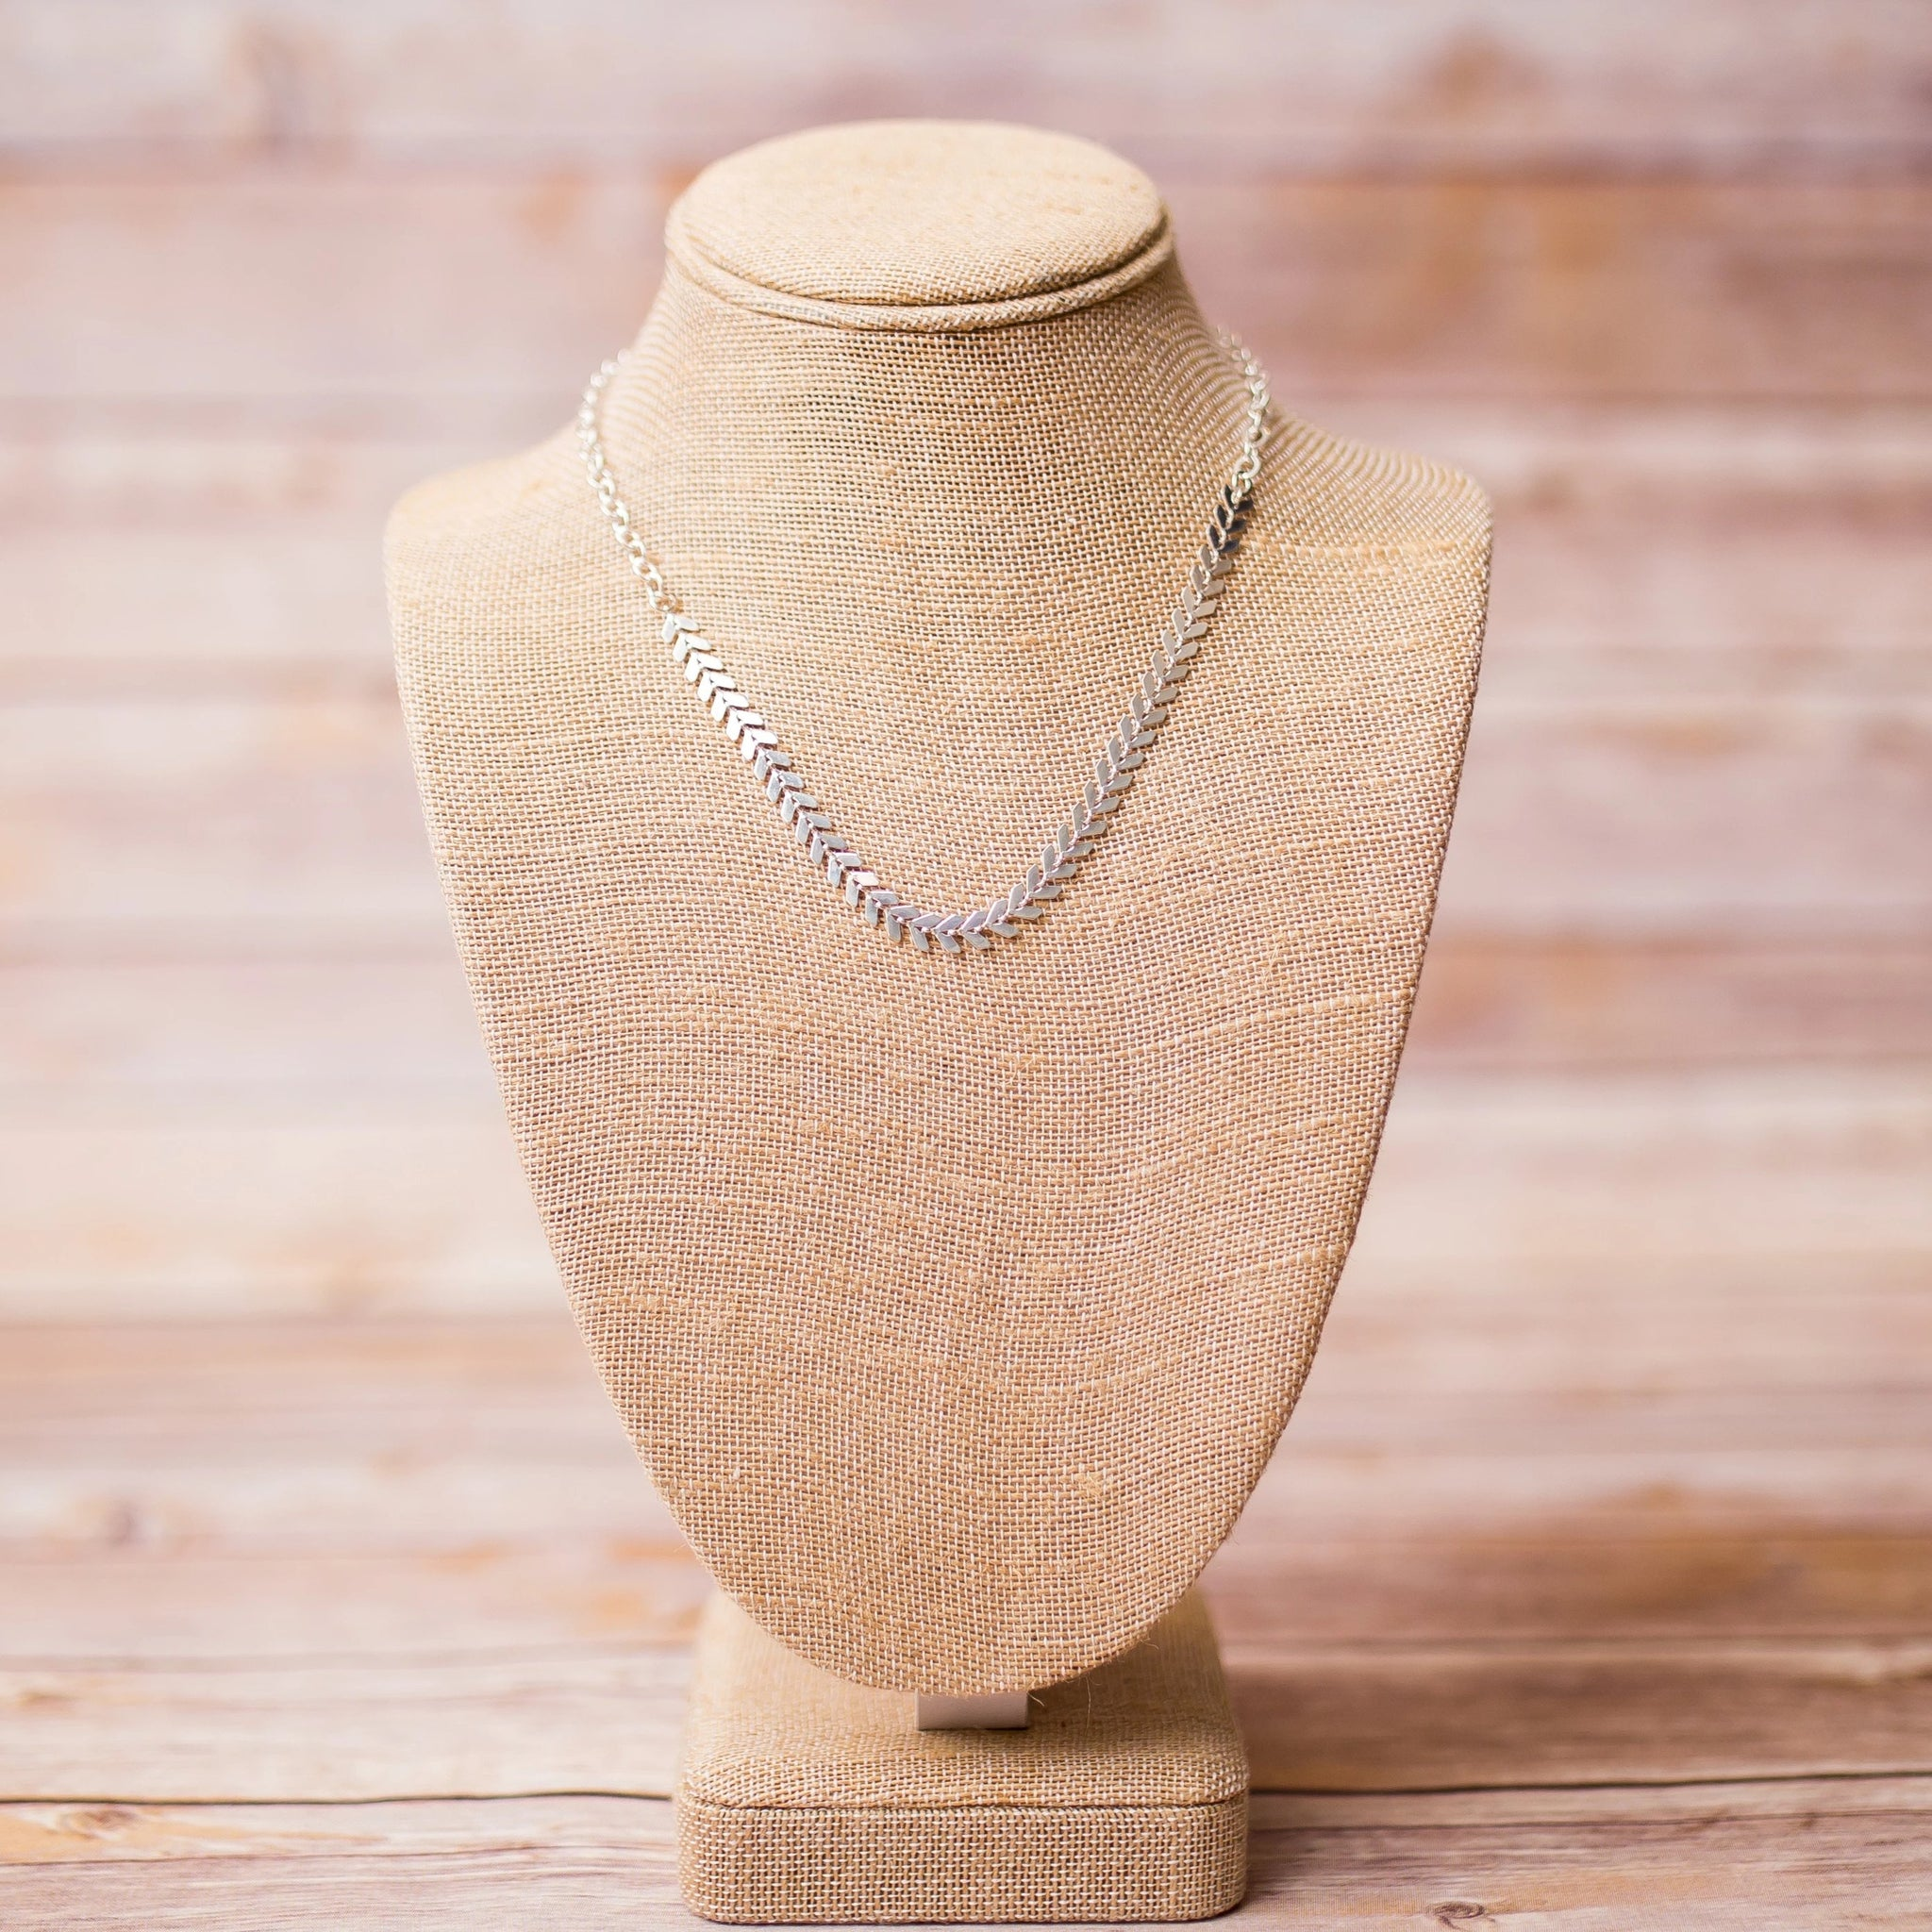 Chevron Silver Plated Necklace - Swara Jewelry